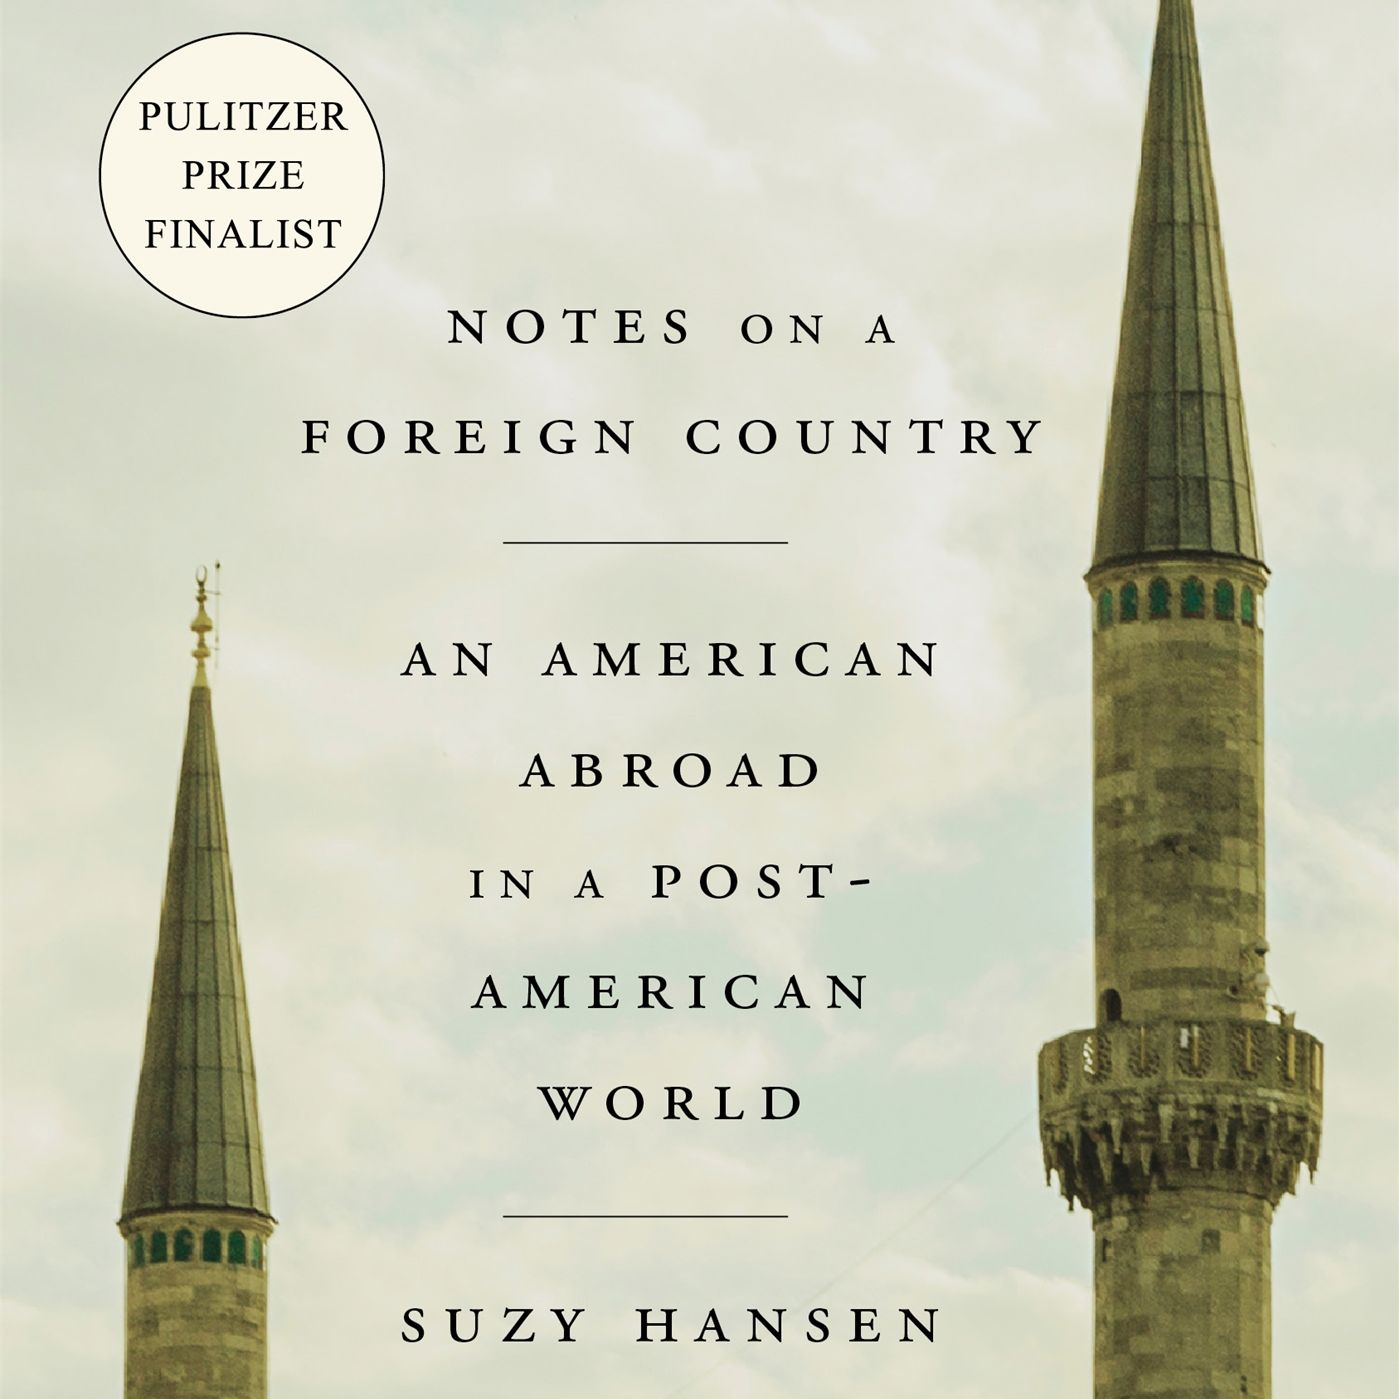 America, Turkey, and the Middle East | Suzy Hansen